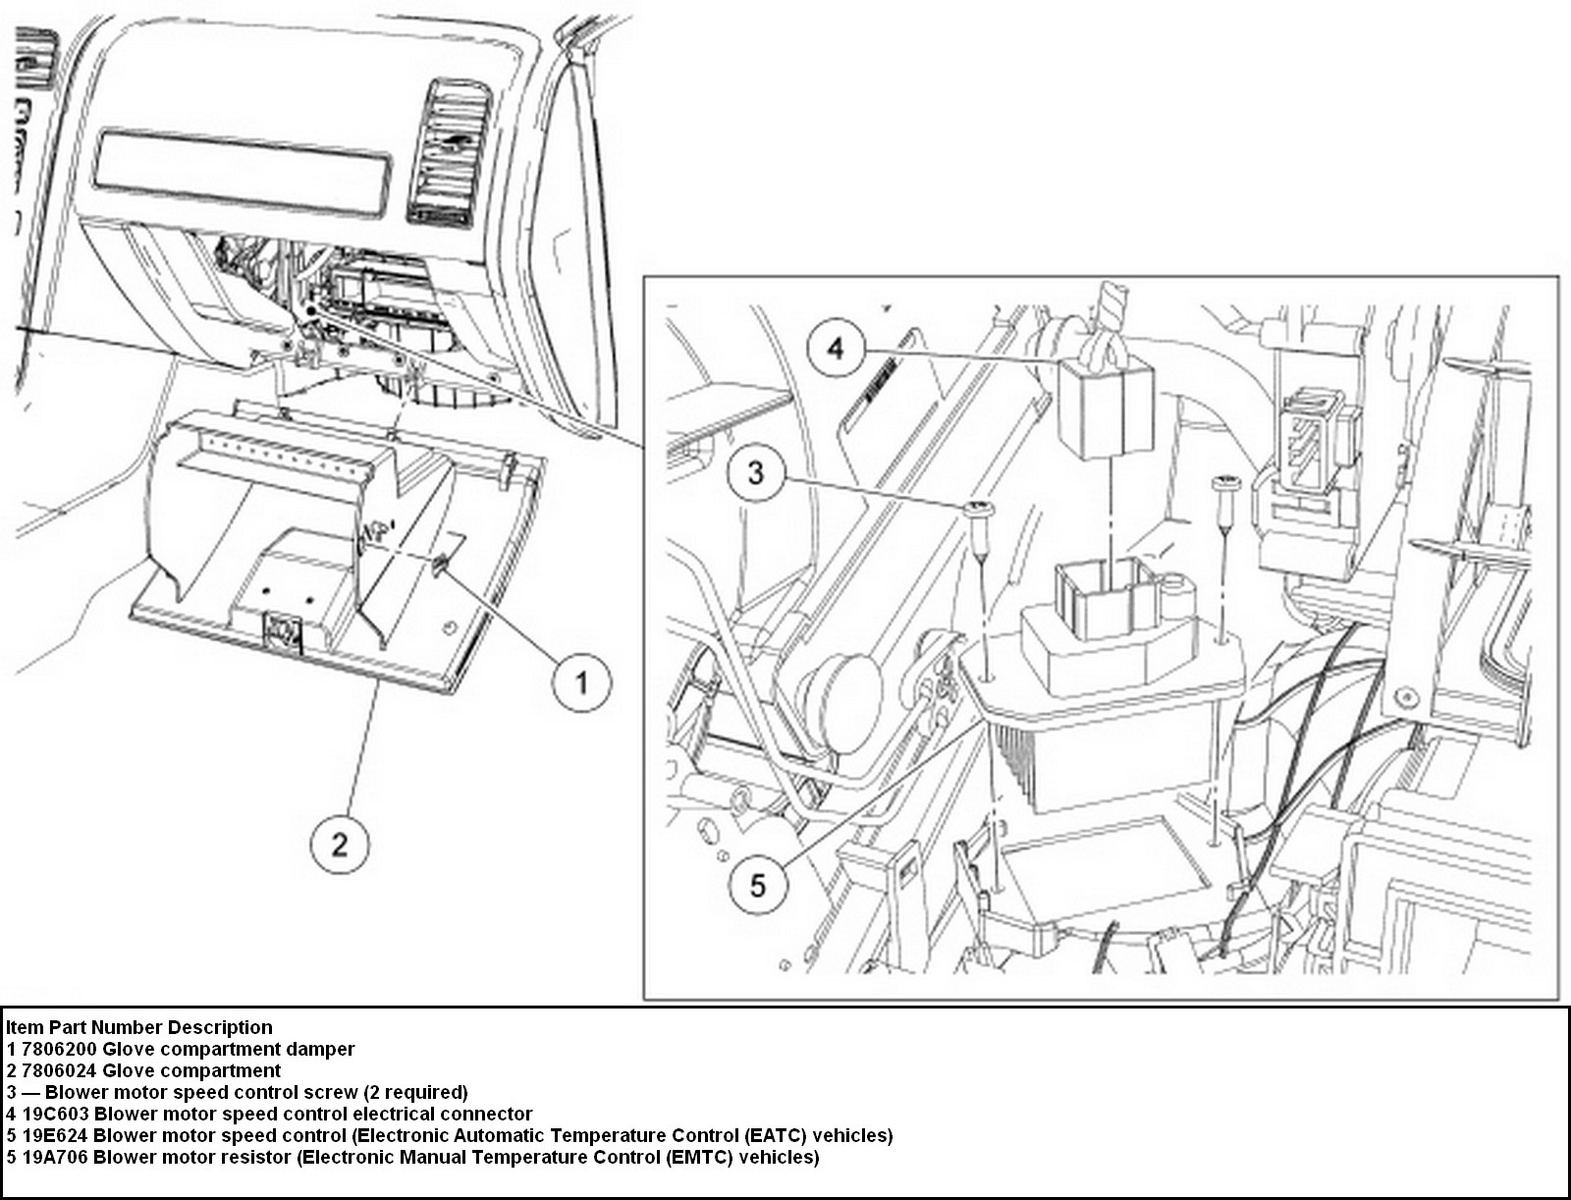 ford edge questions how do you remove and replace  install a blower motor for a 2007 ford e 2003 Ford Expedition Fuse Box Diagram 2003 Ford Expedition Fuse Box Diagram